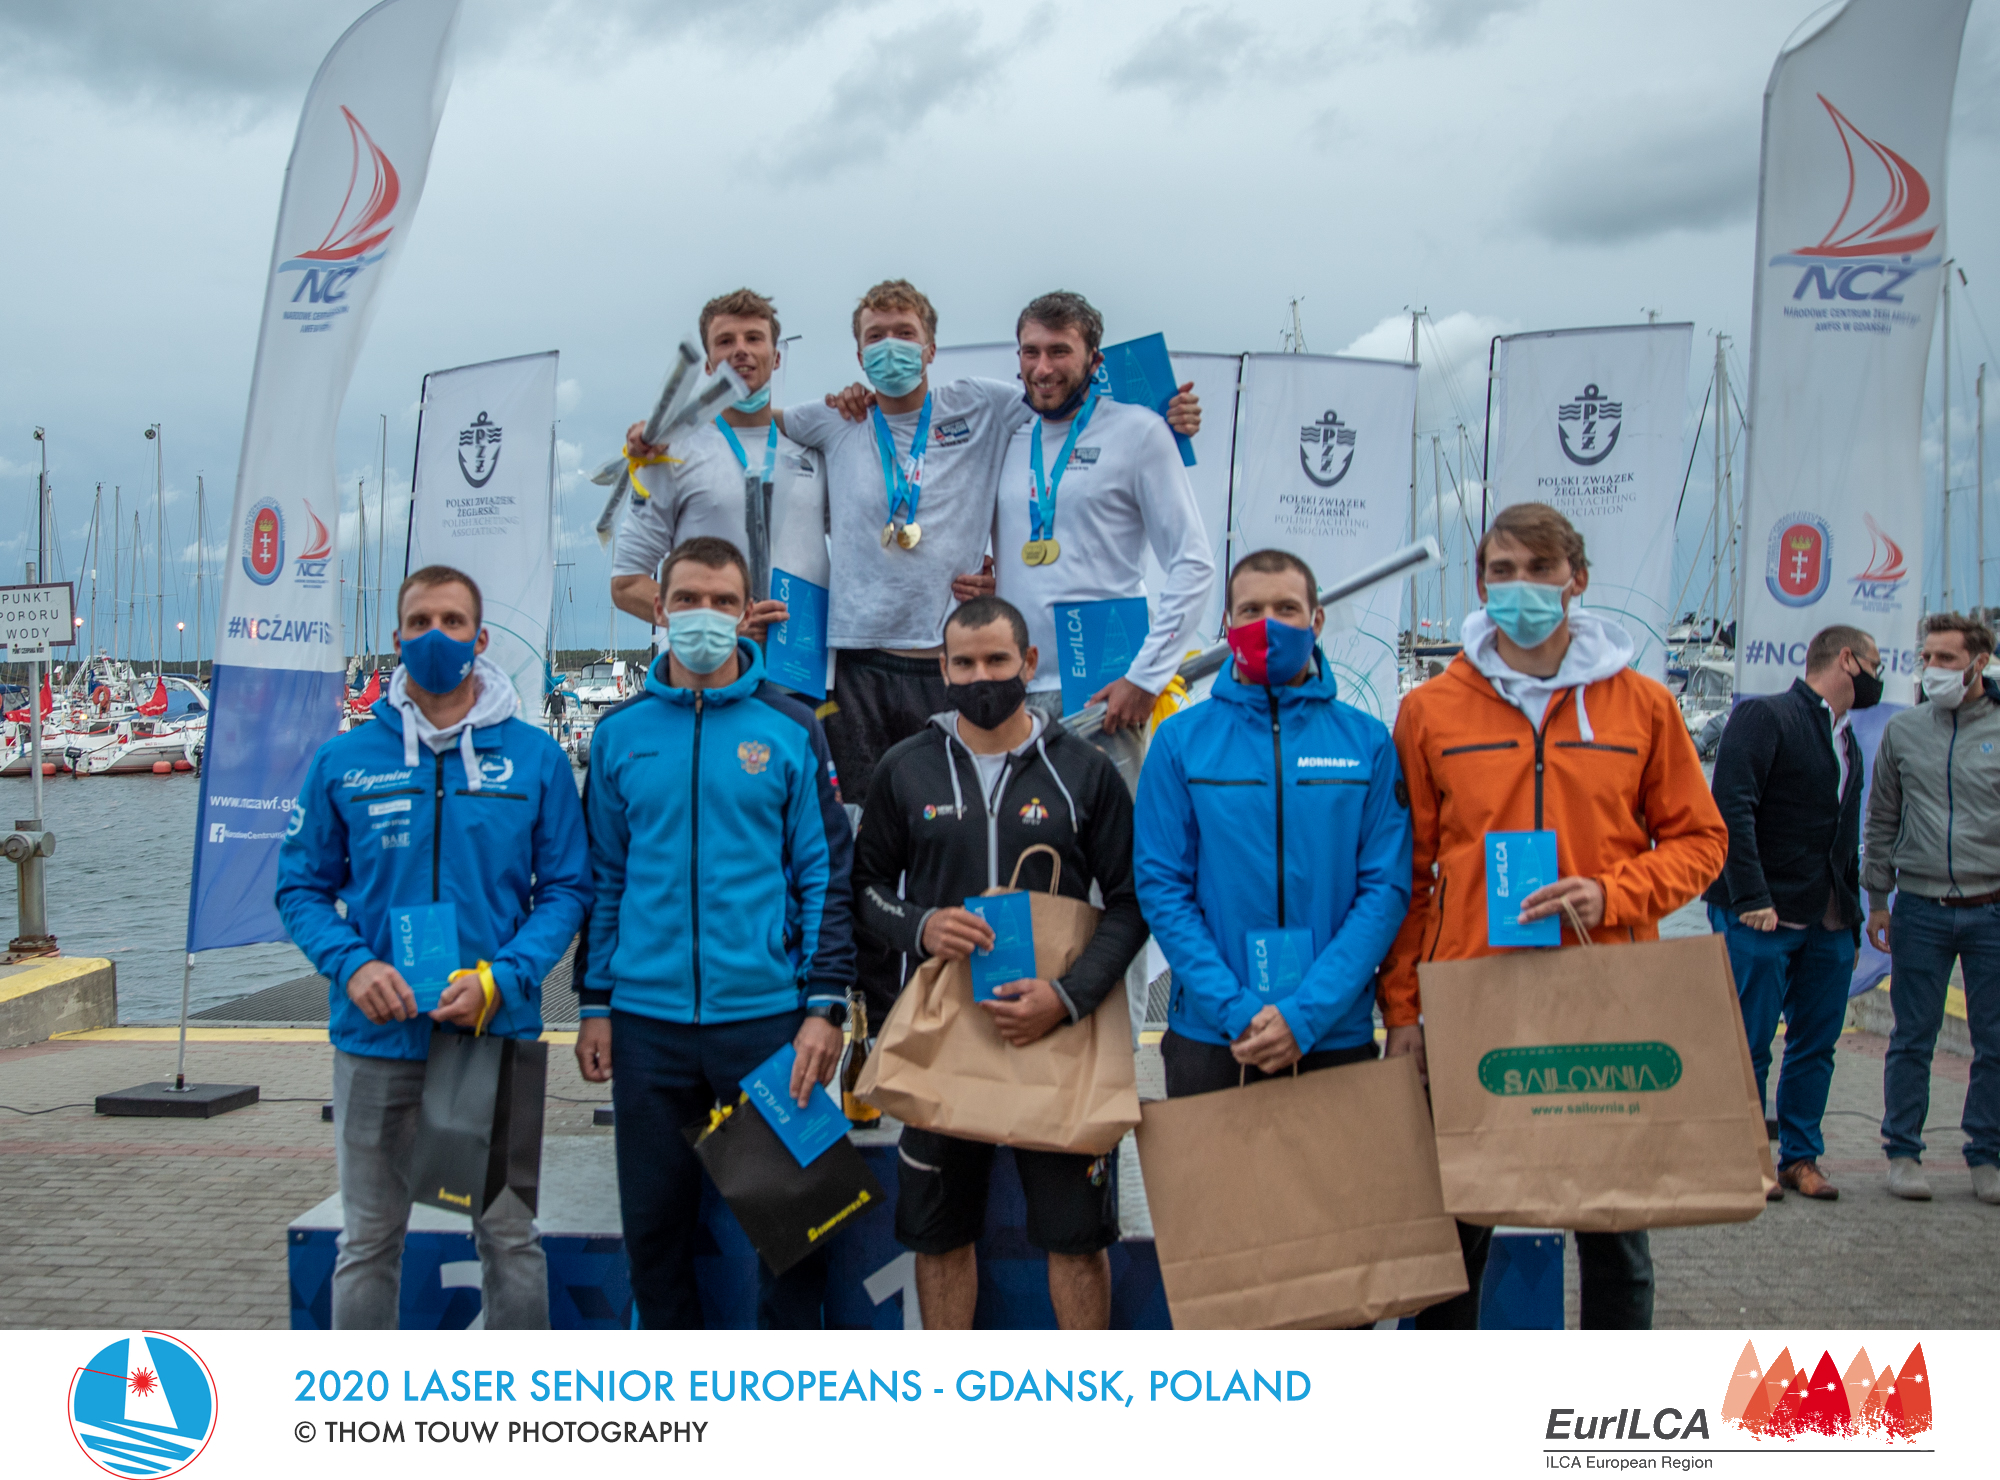 2020 laser men european winners